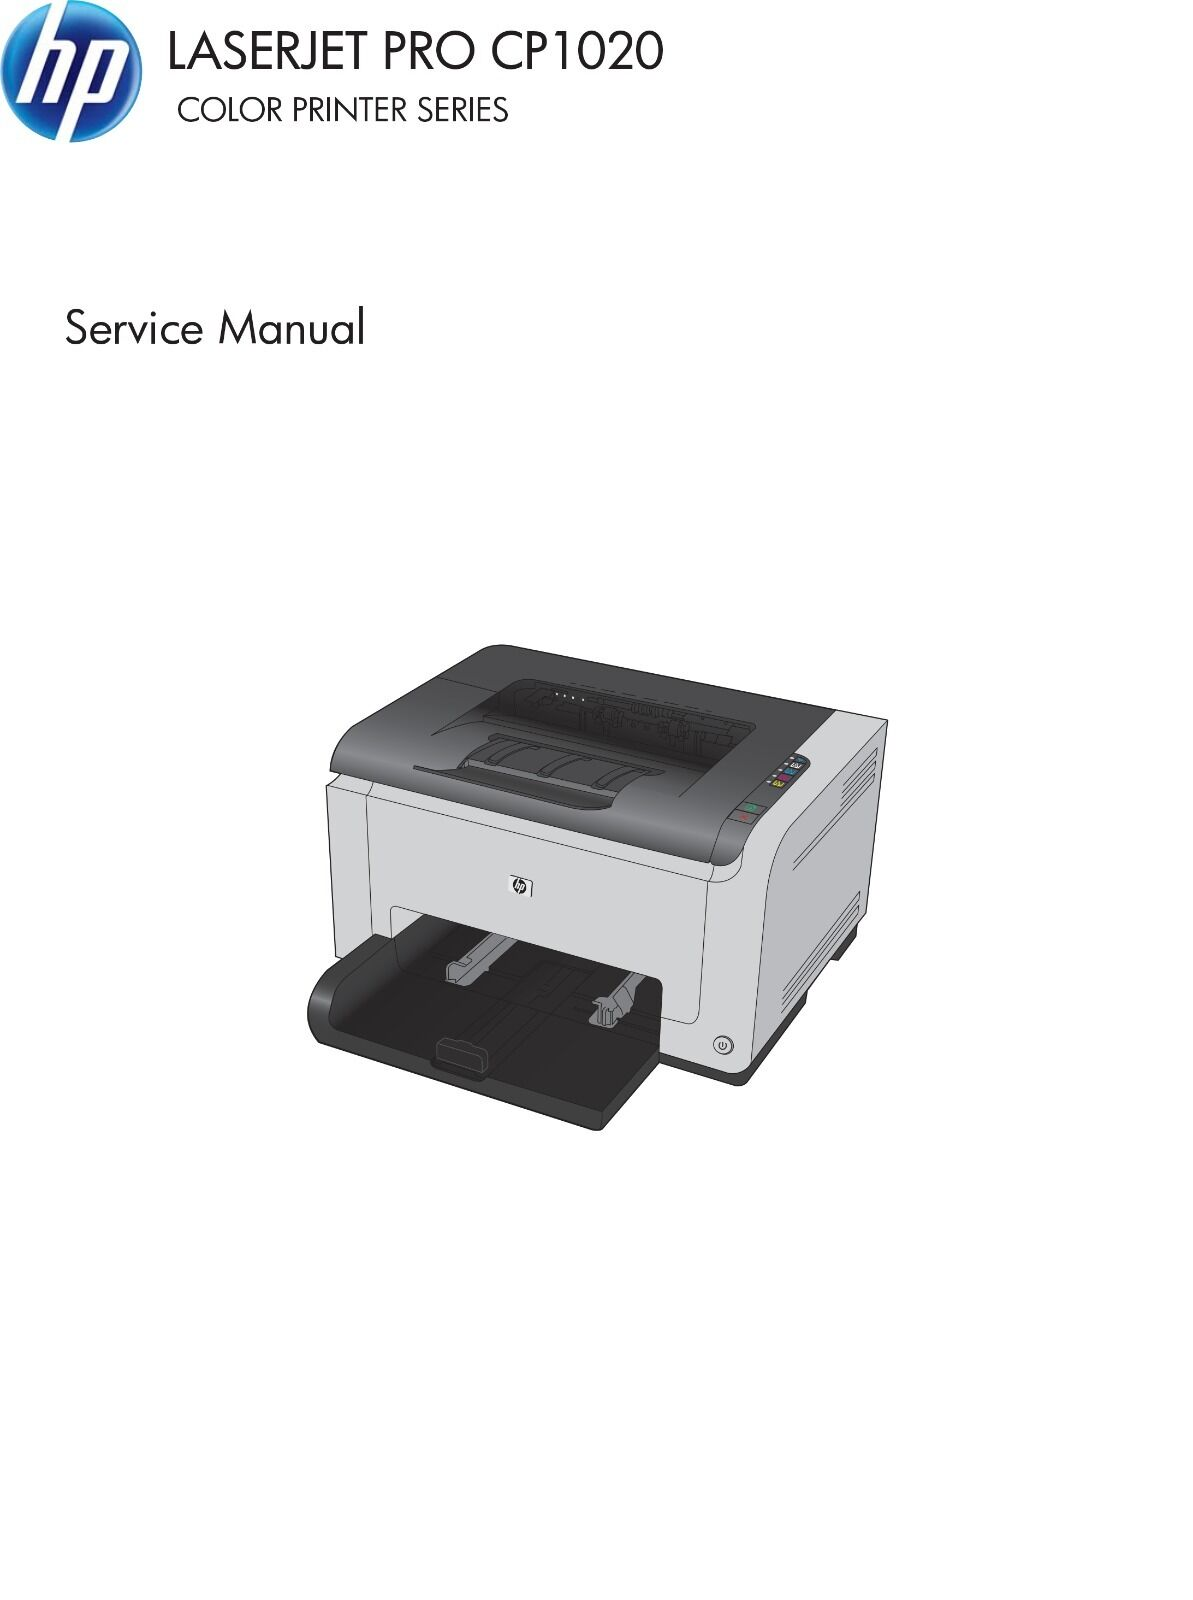 HP Color LaserJet Pro CP1020 Series - Service Manual PDF 1 of 4Only 1  available ...